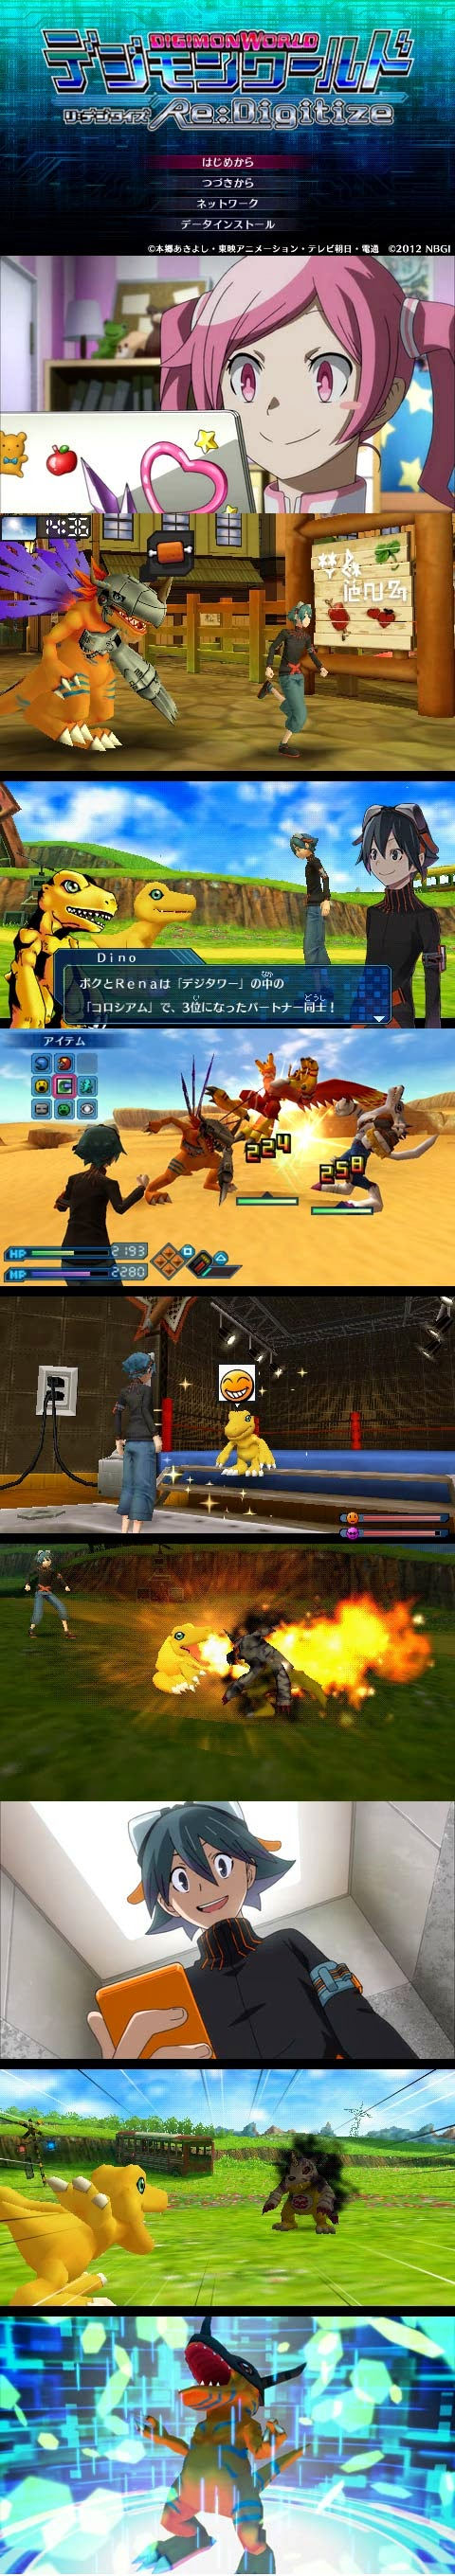 How to Get Digimon World Re-Digitze in English for FREE